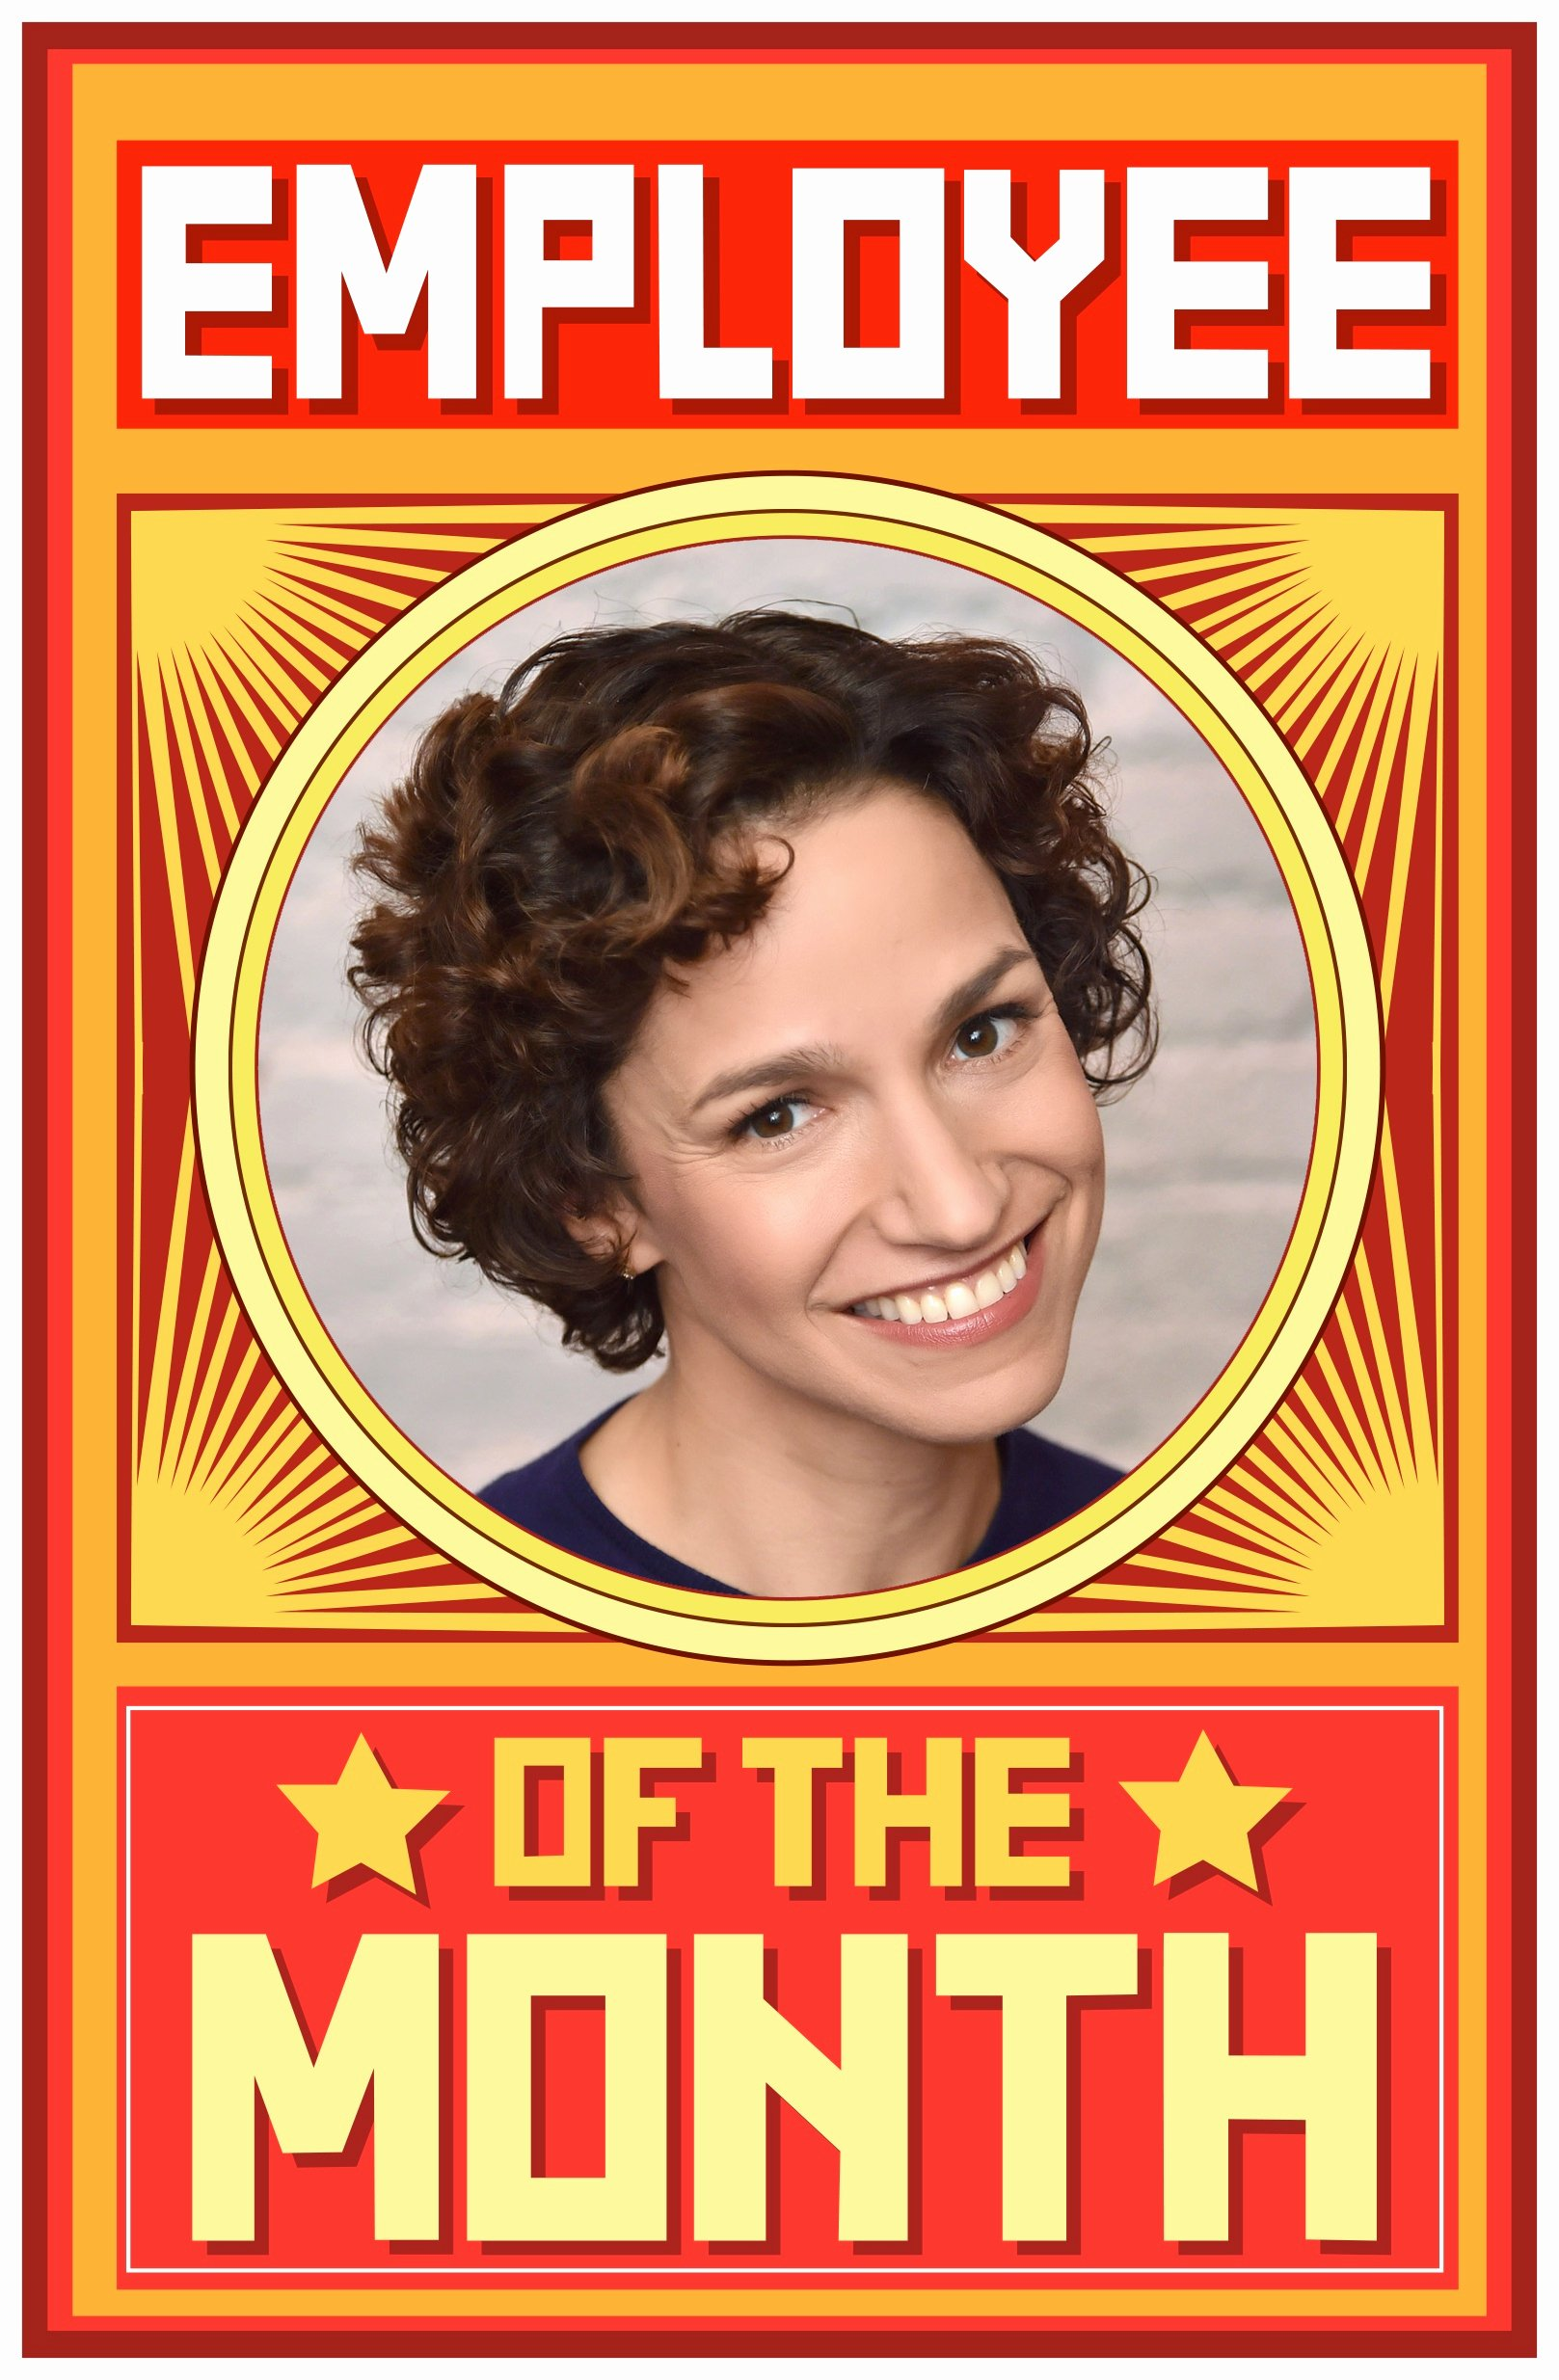 Employee Of the Month Frame Template Elegant Spotlight Employee Of the Month's Catie Lazarus On